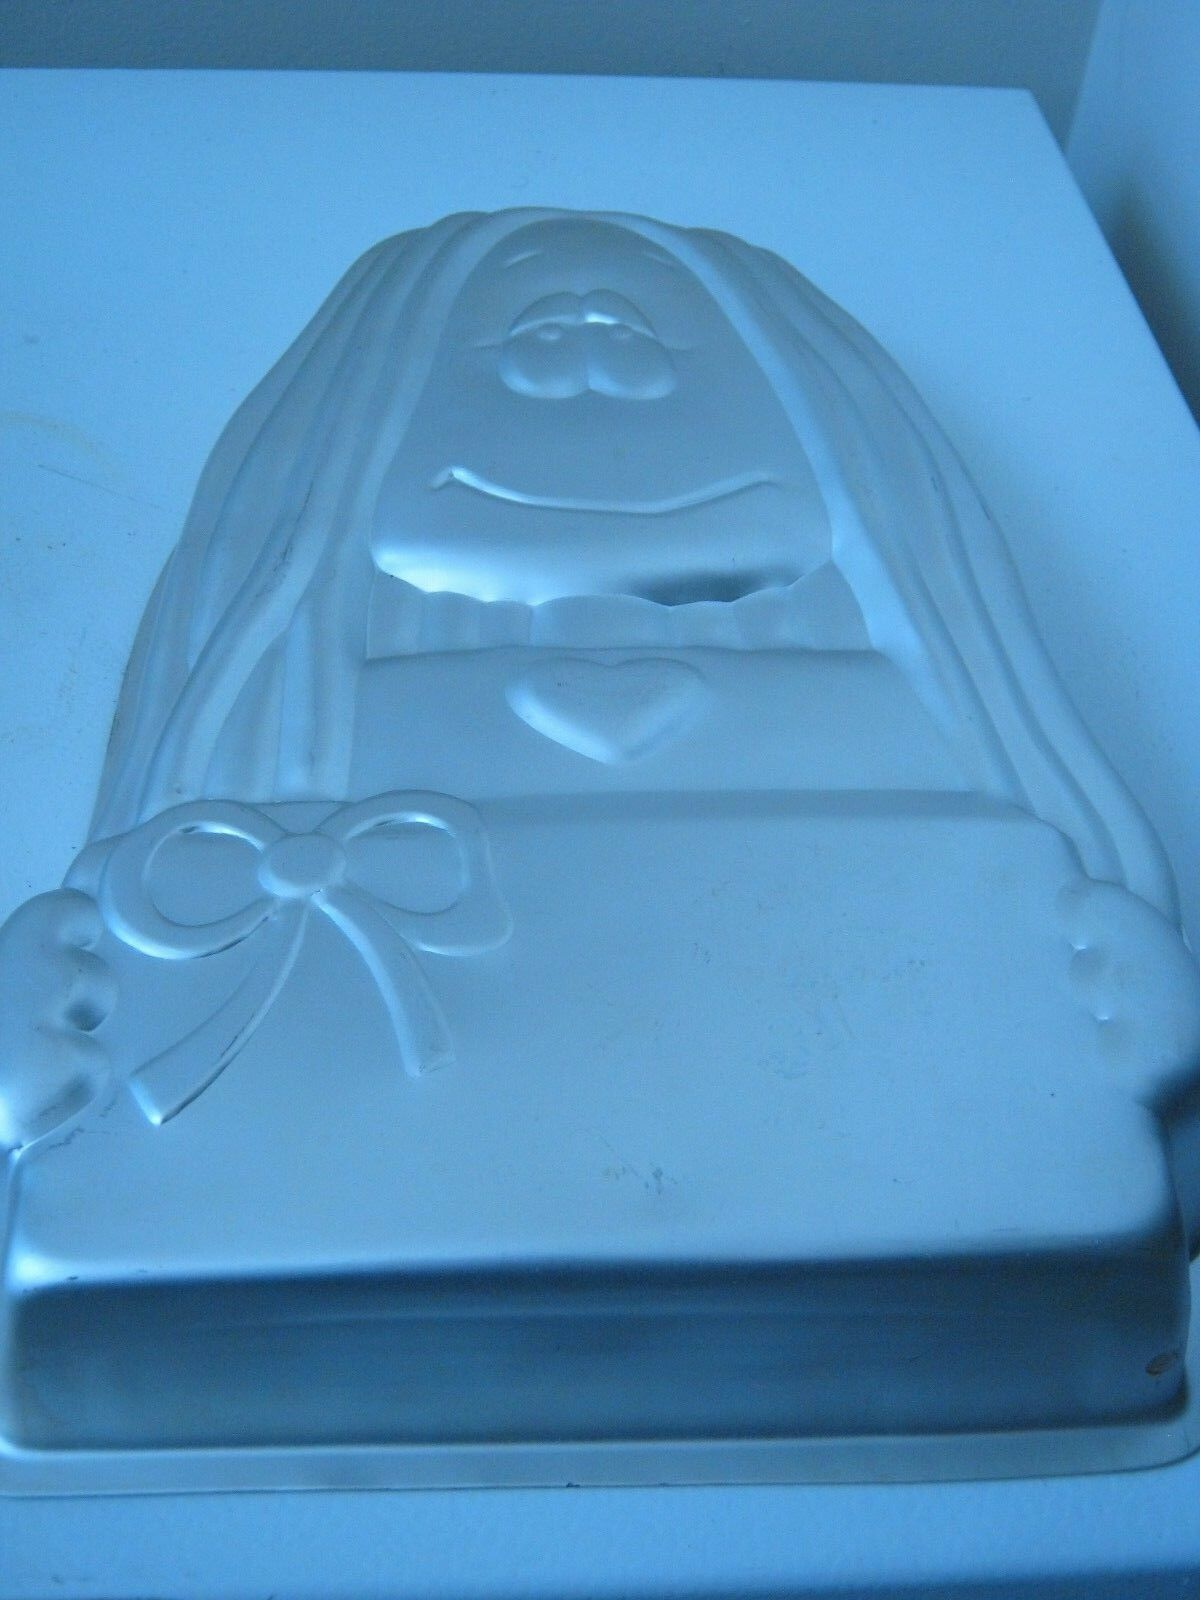 Primary image for Wilton Cathy Cake Pan (502-3894)